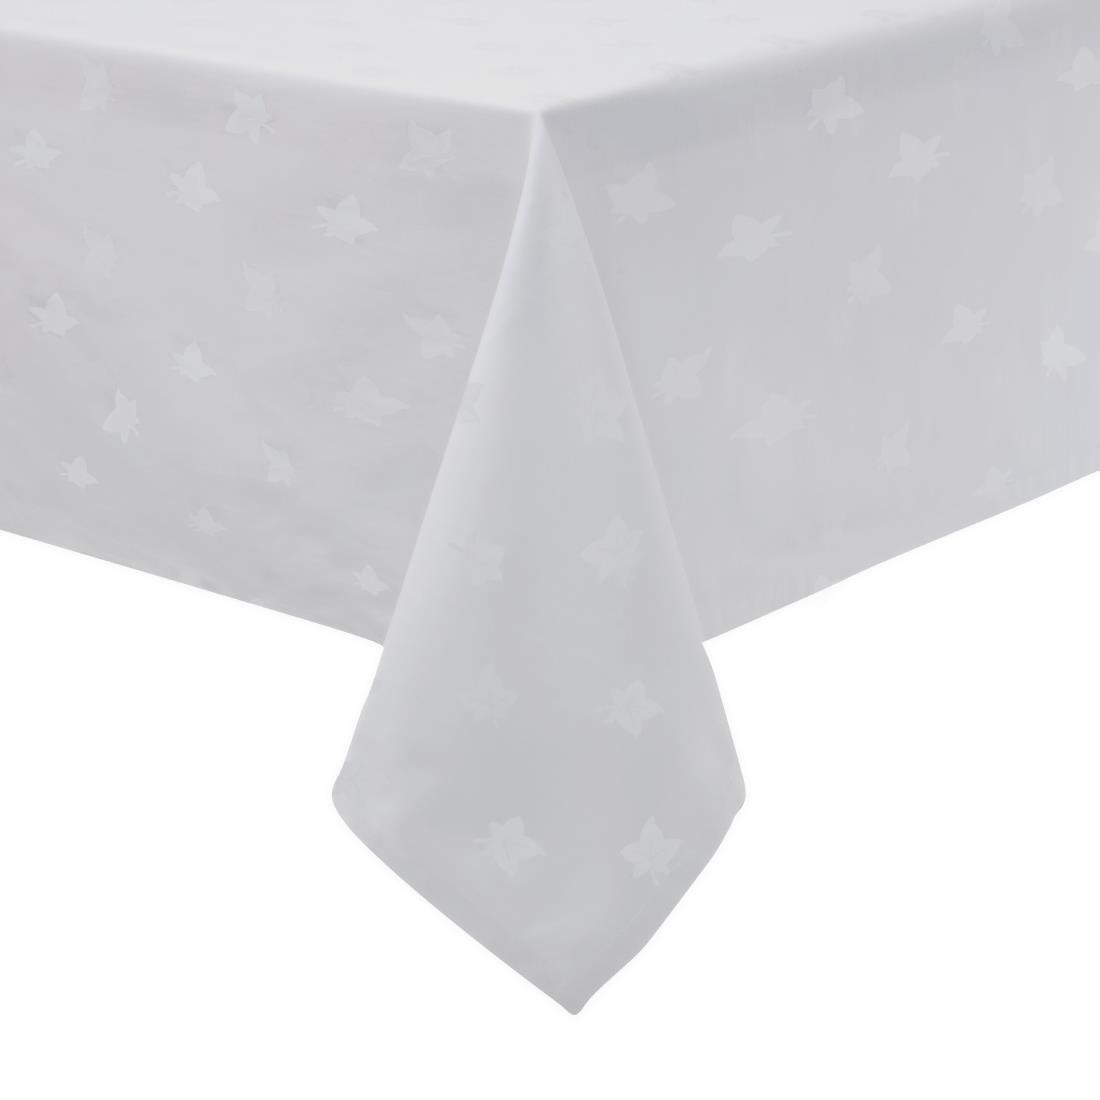 Image of Mitre Luxury Luxor Tablecloth Ivy Leaf White 1350 x 2300mm